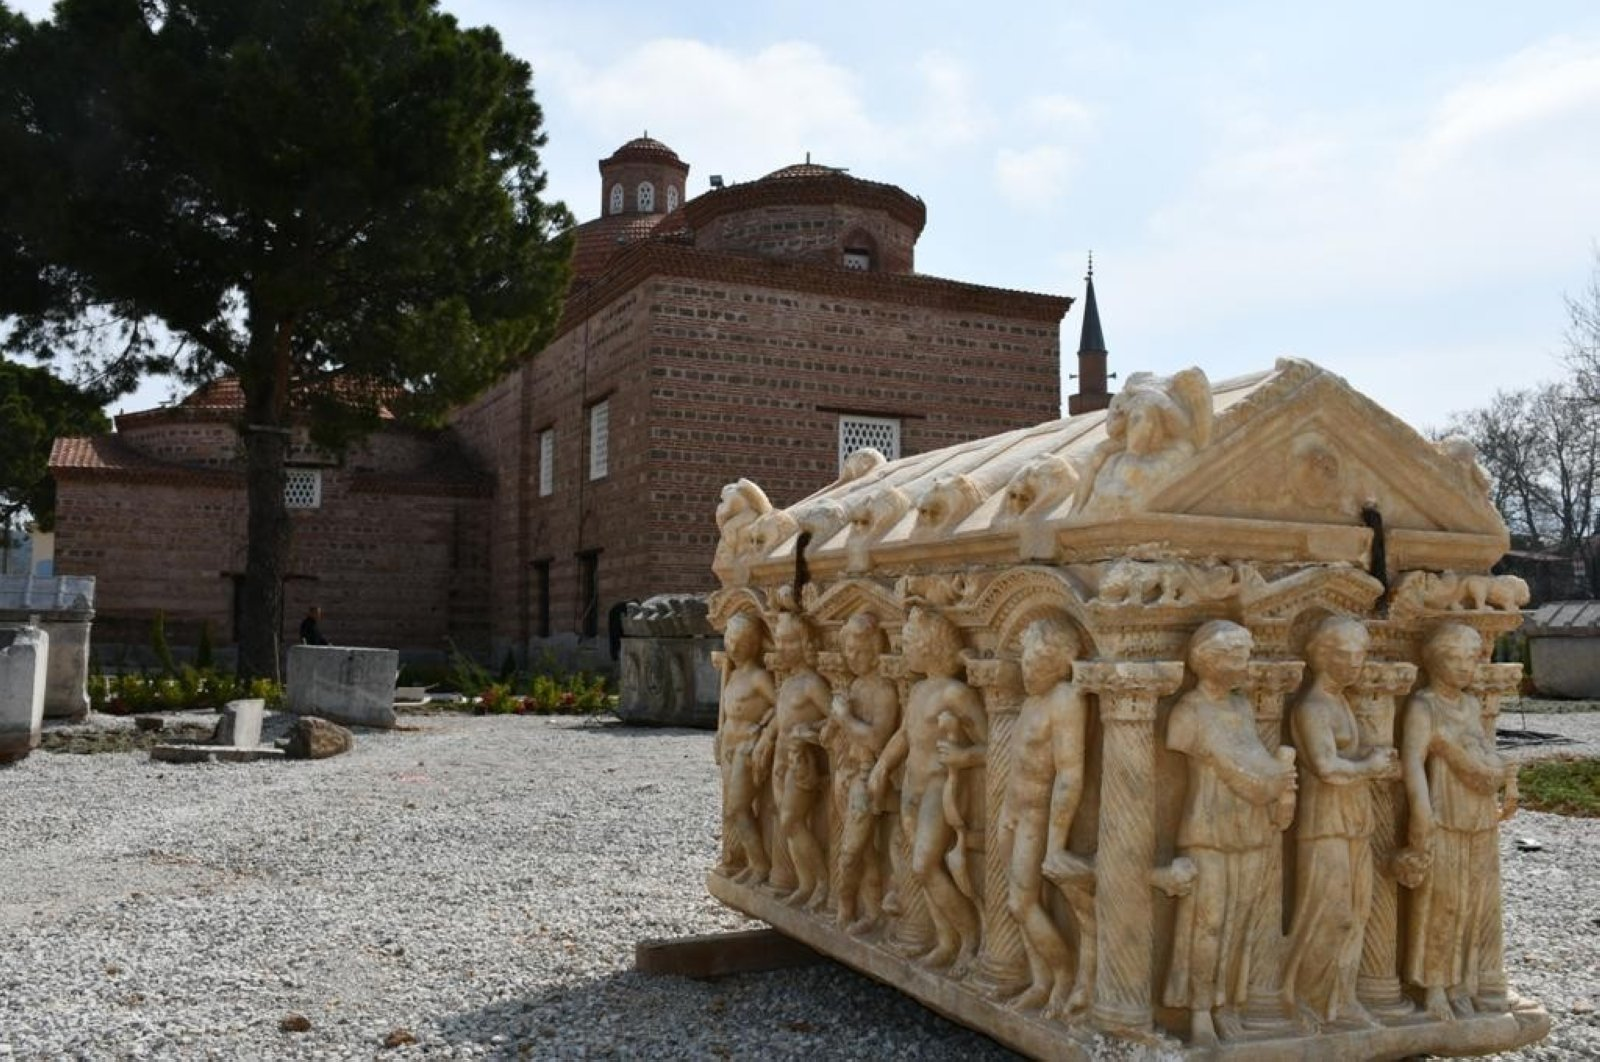 Artifacts like this sarcophagus are on display in the garden of the museum. (İHA Photo)